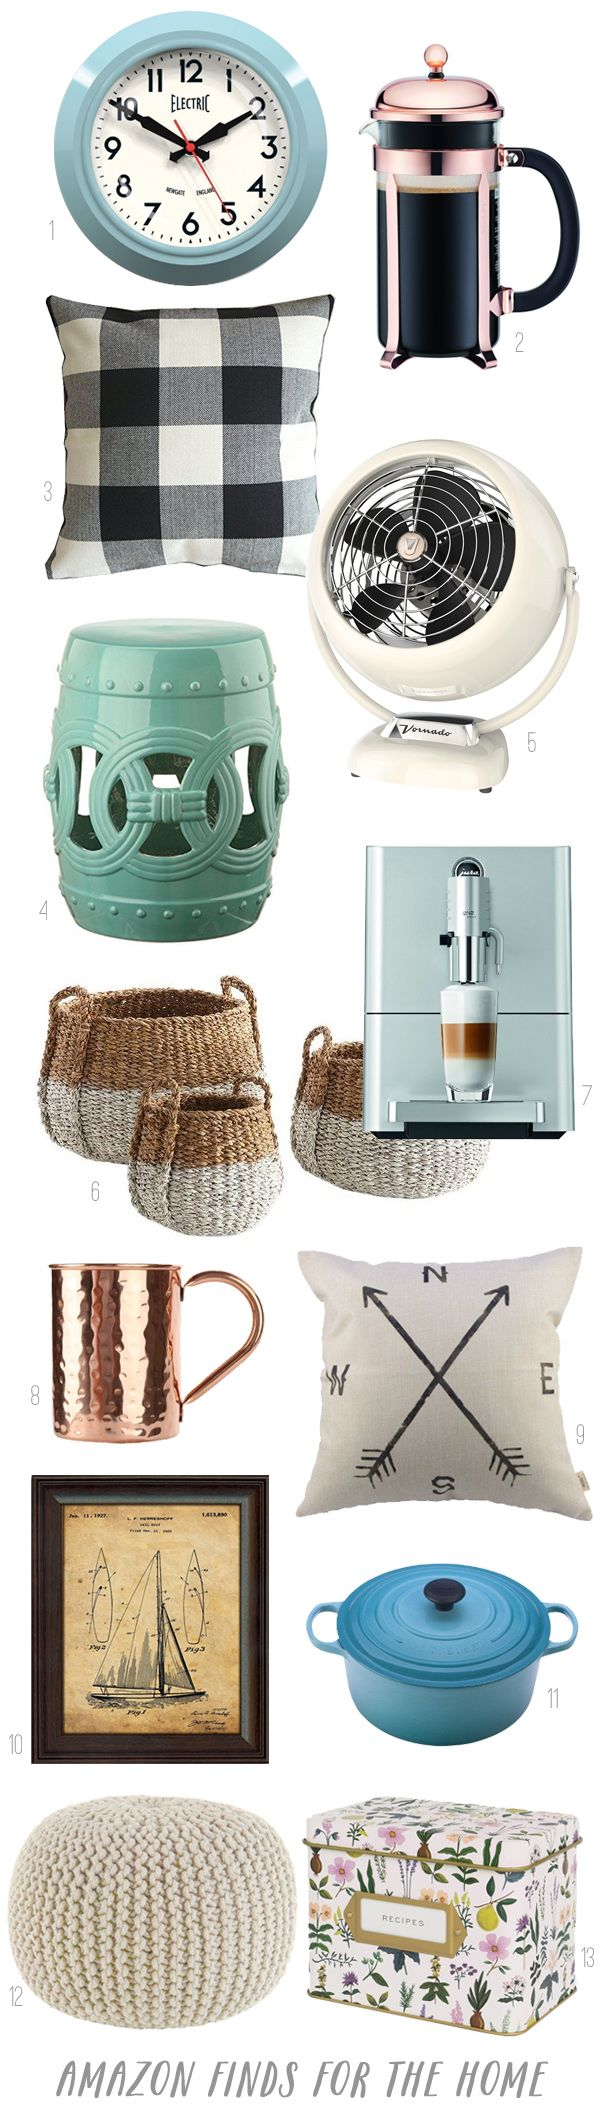 Home Decor Finds on Amazon | Room inspiration, Cute home ...